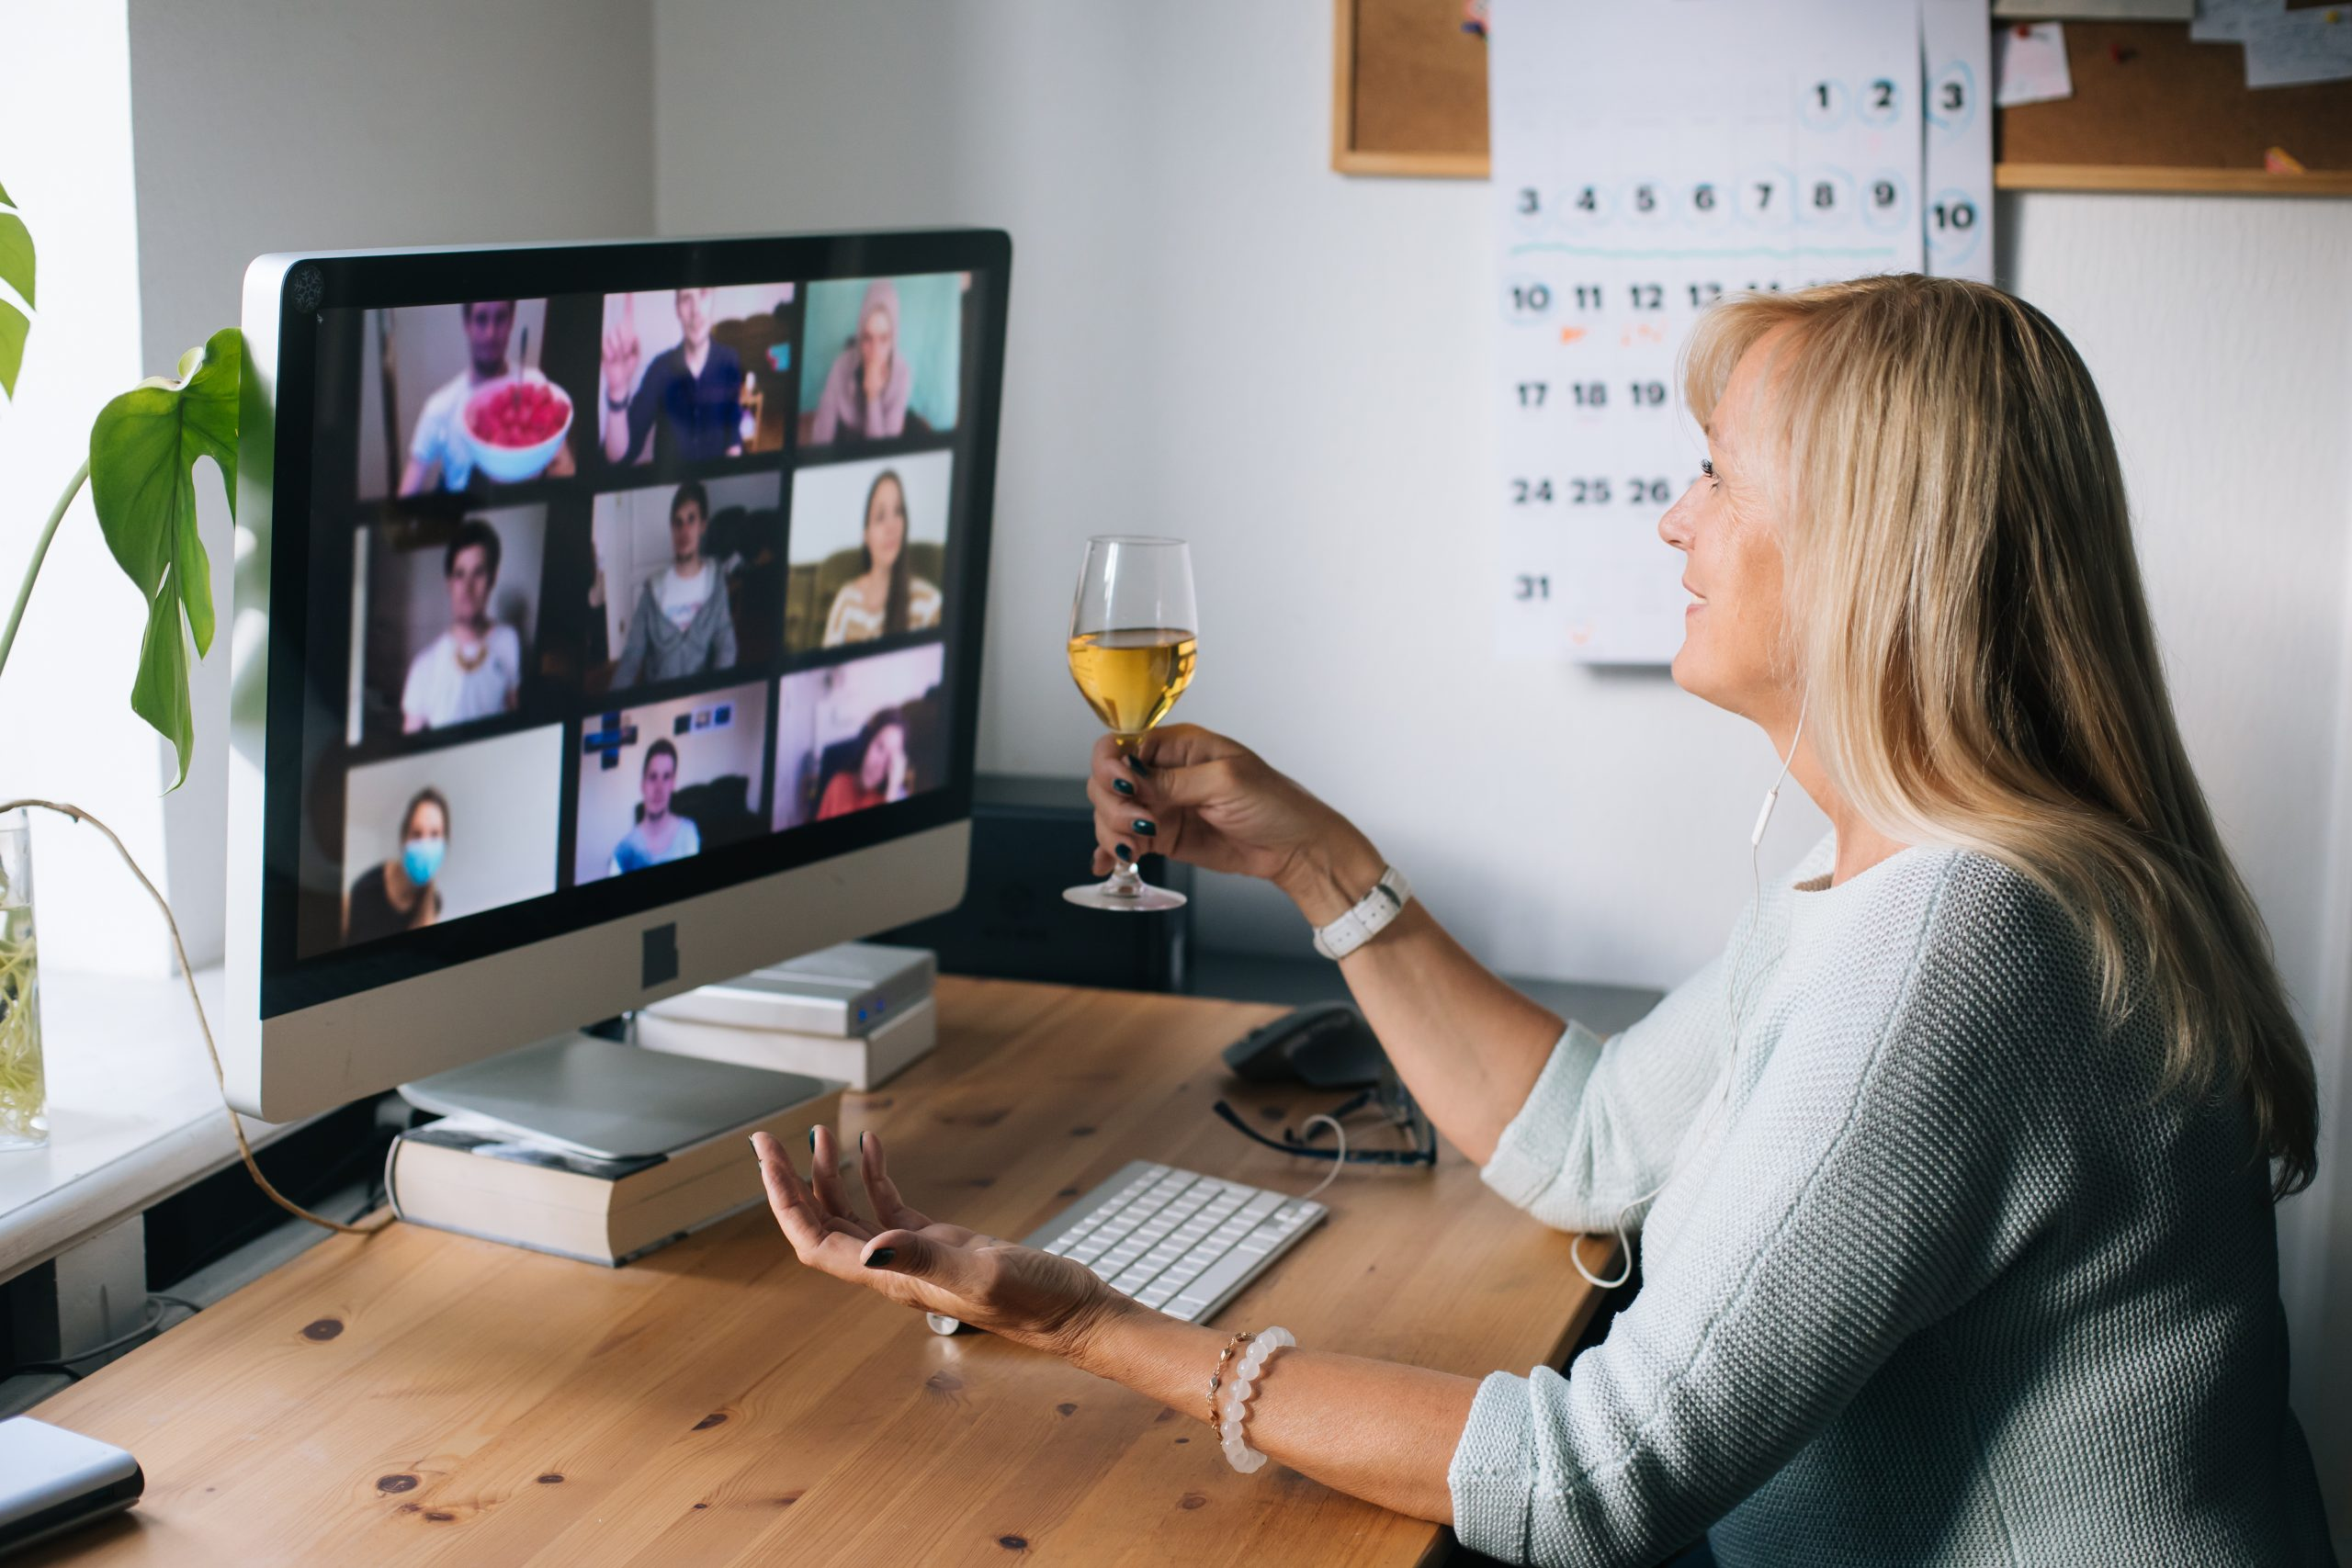 virtual happy hour, q link wireless is giving away $100 visa gift cards in a mother's day giveaway